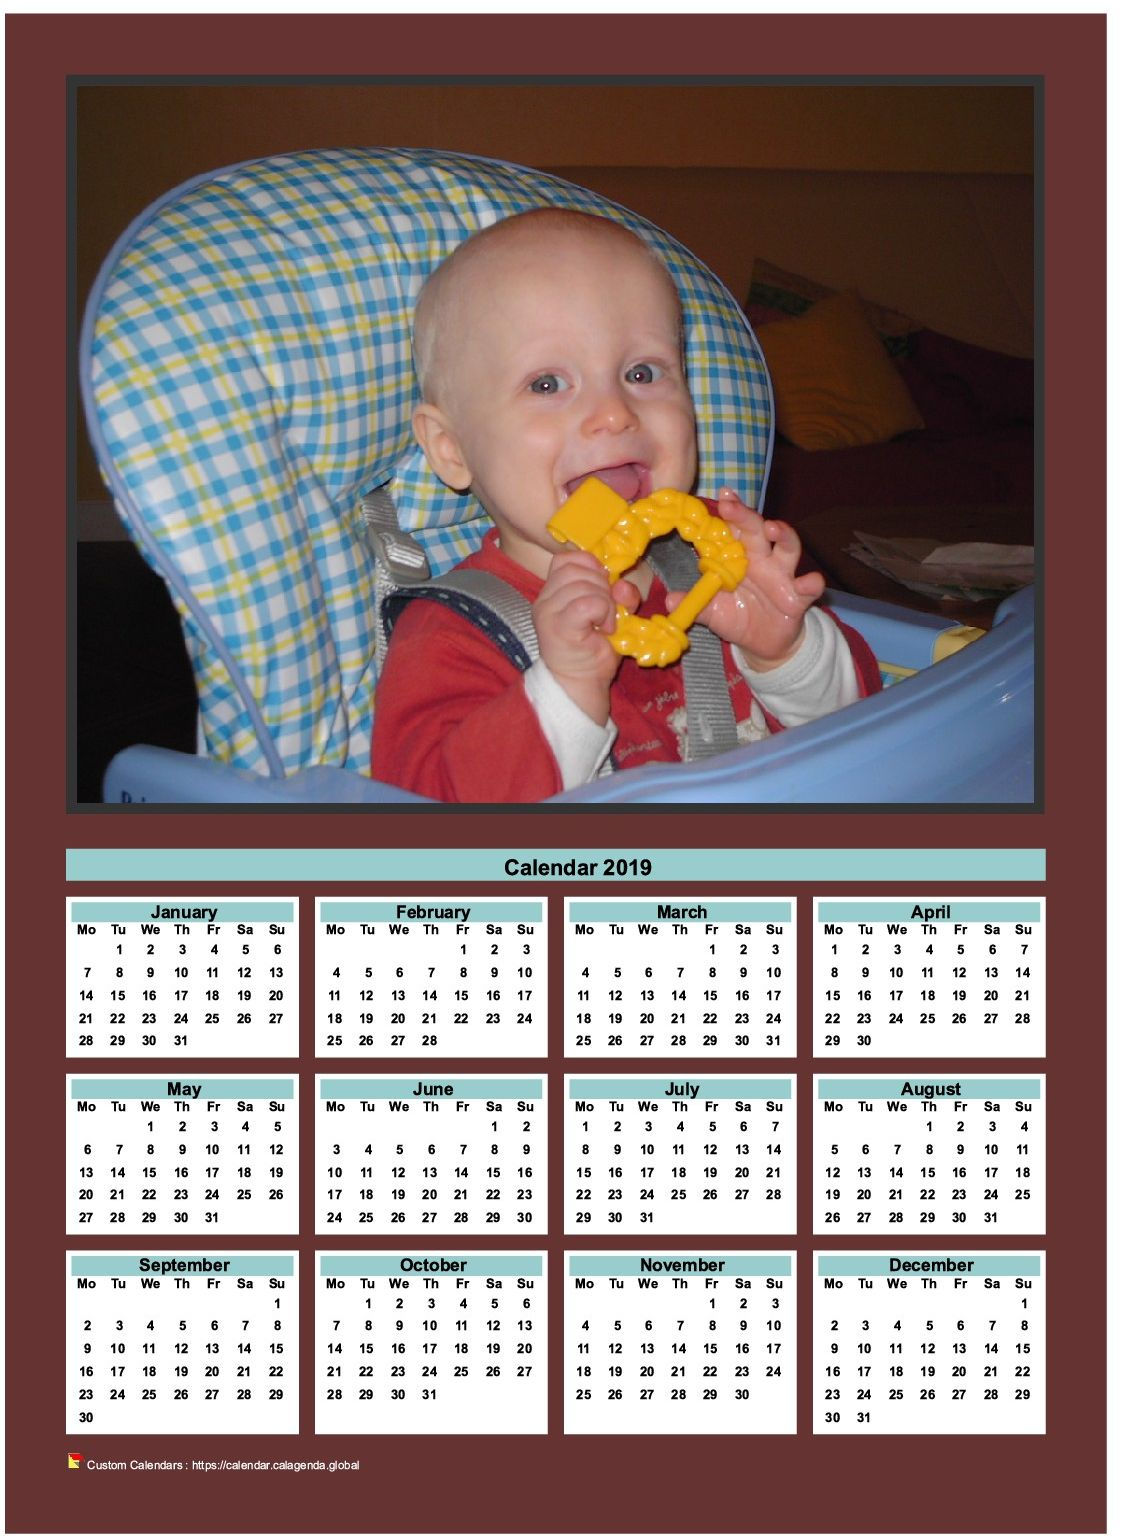 Calendar 2019 annual to print with family photo